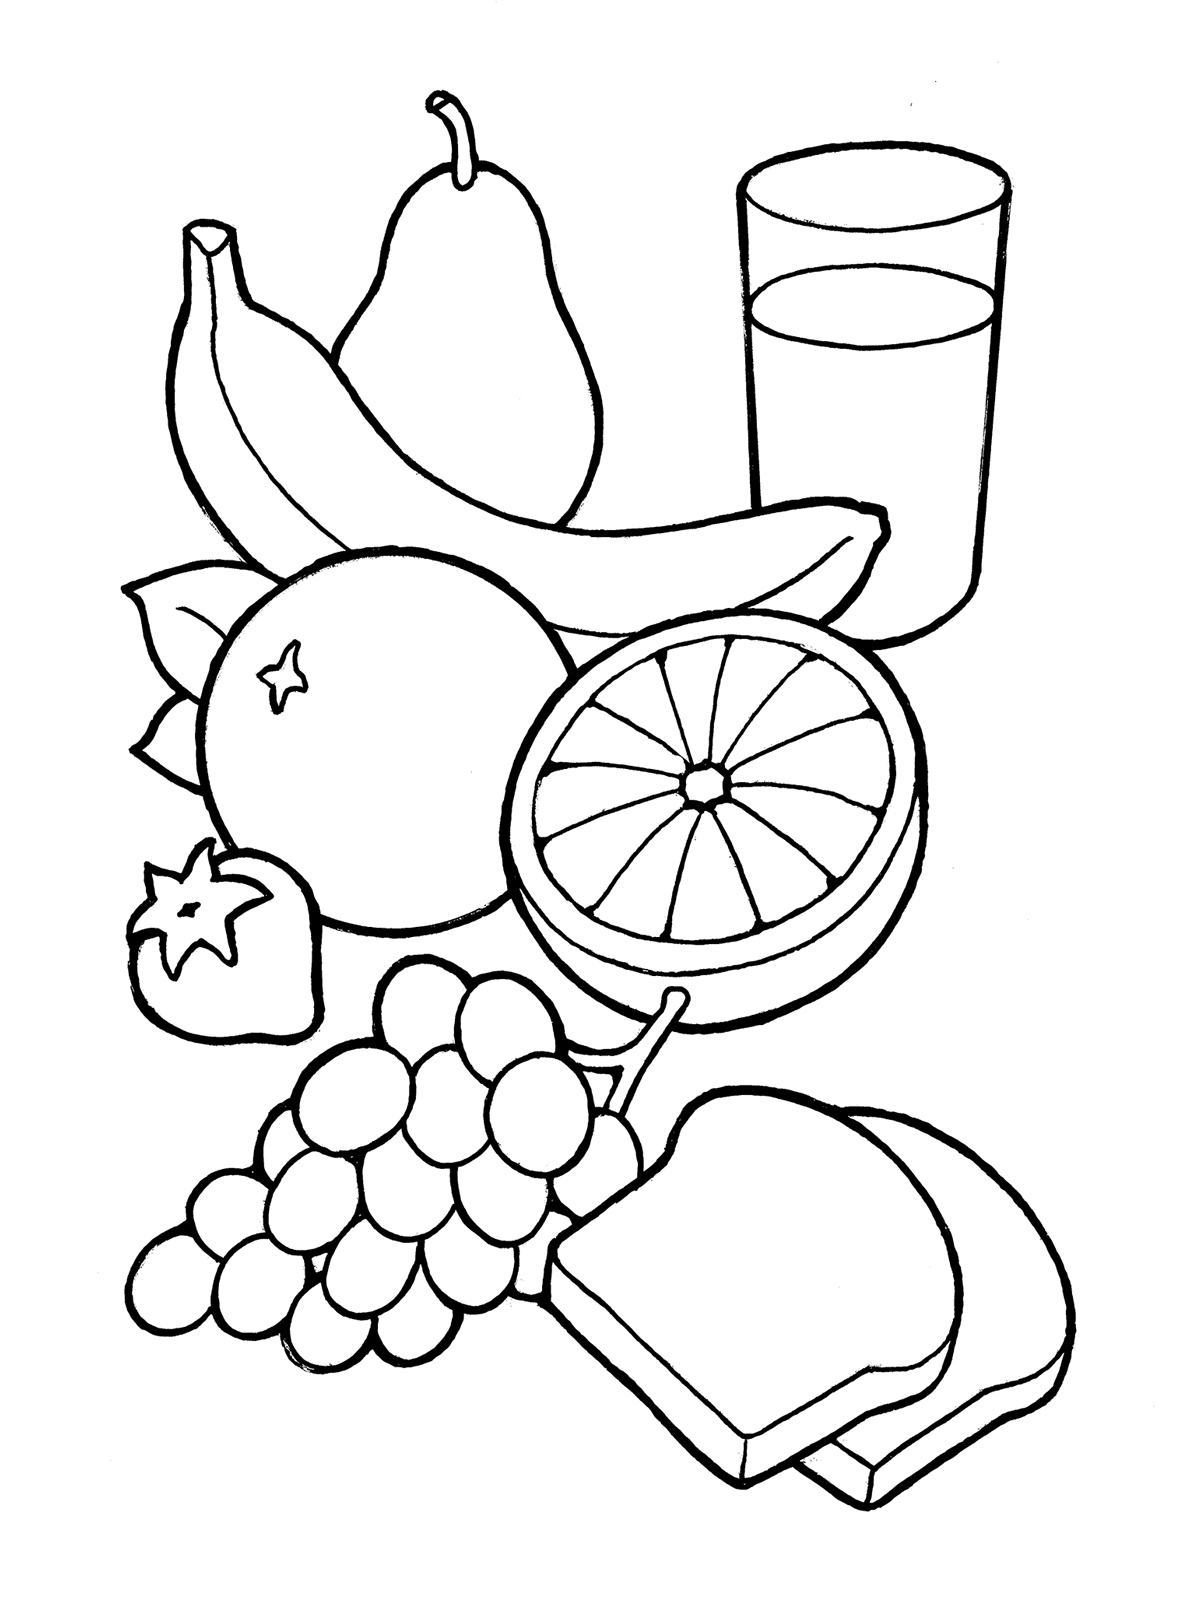 Eating Healthy Food Clipart Black And White 10